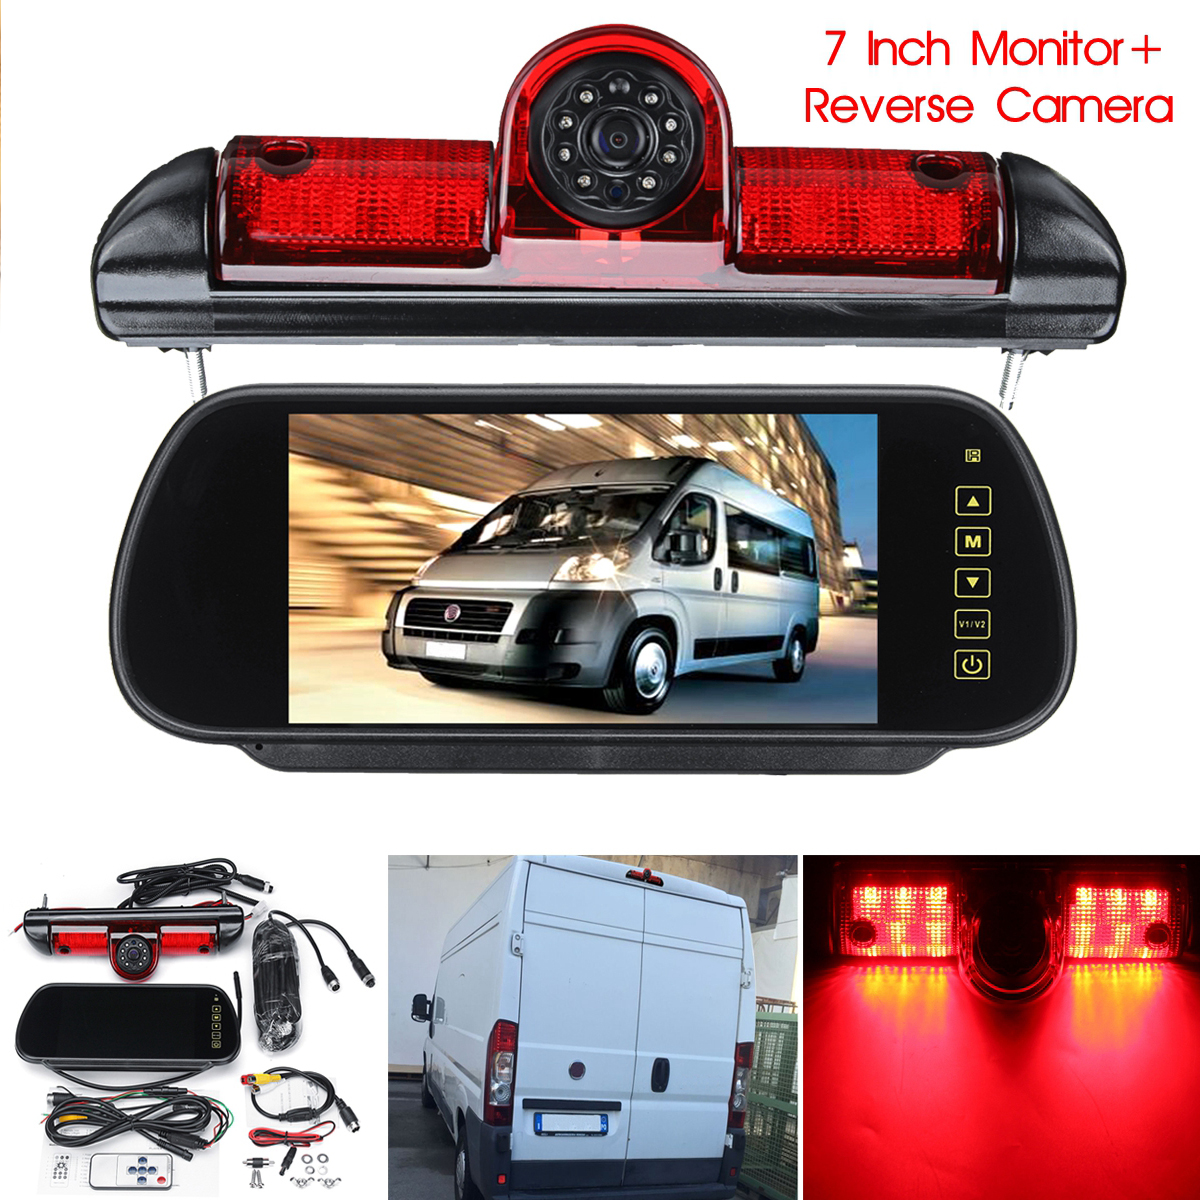 7 LED Monitor + Reversing Backup Rear View Camera w/ Brake Light For Fiat Ducato for Peugeot Boxer for Citroen Relay7 LED Monitor + Reversing Backup Rear View Camera w/ Brake Light For Fiat Ducato for Peugeot Boxer for Citroen Relay